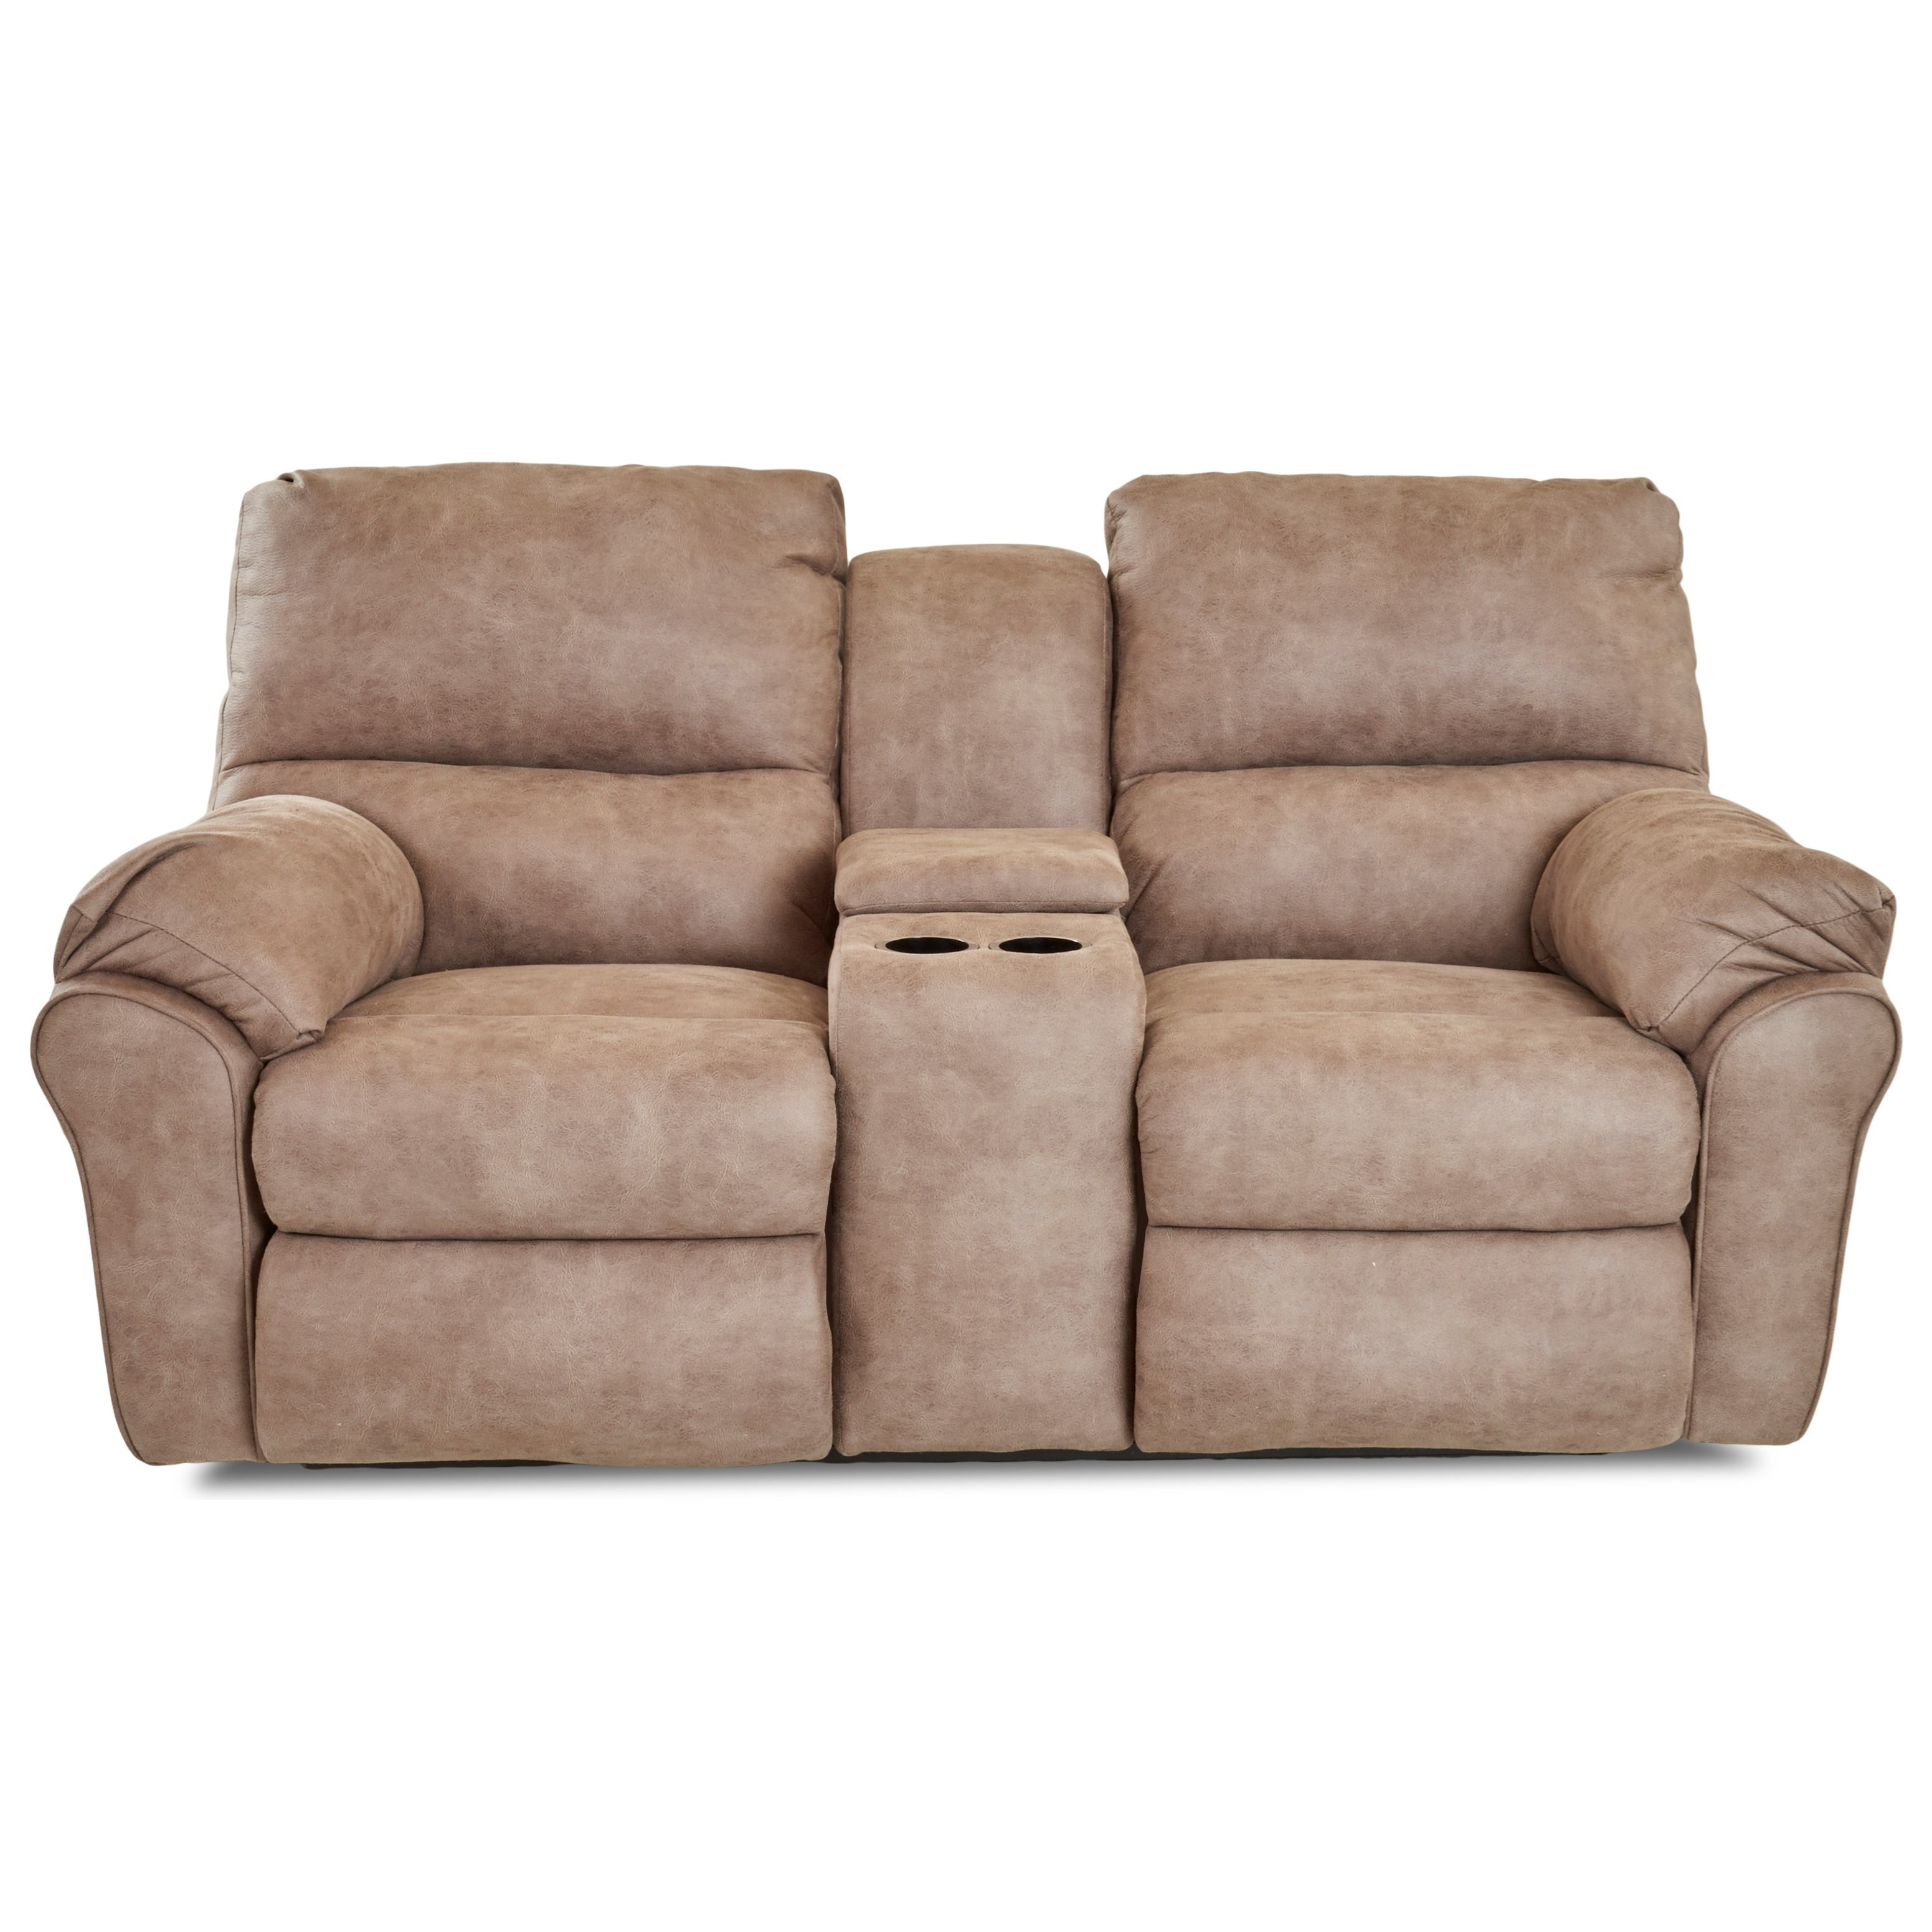 Casual Power Reclining Loveseat with Cupholder Storage Console